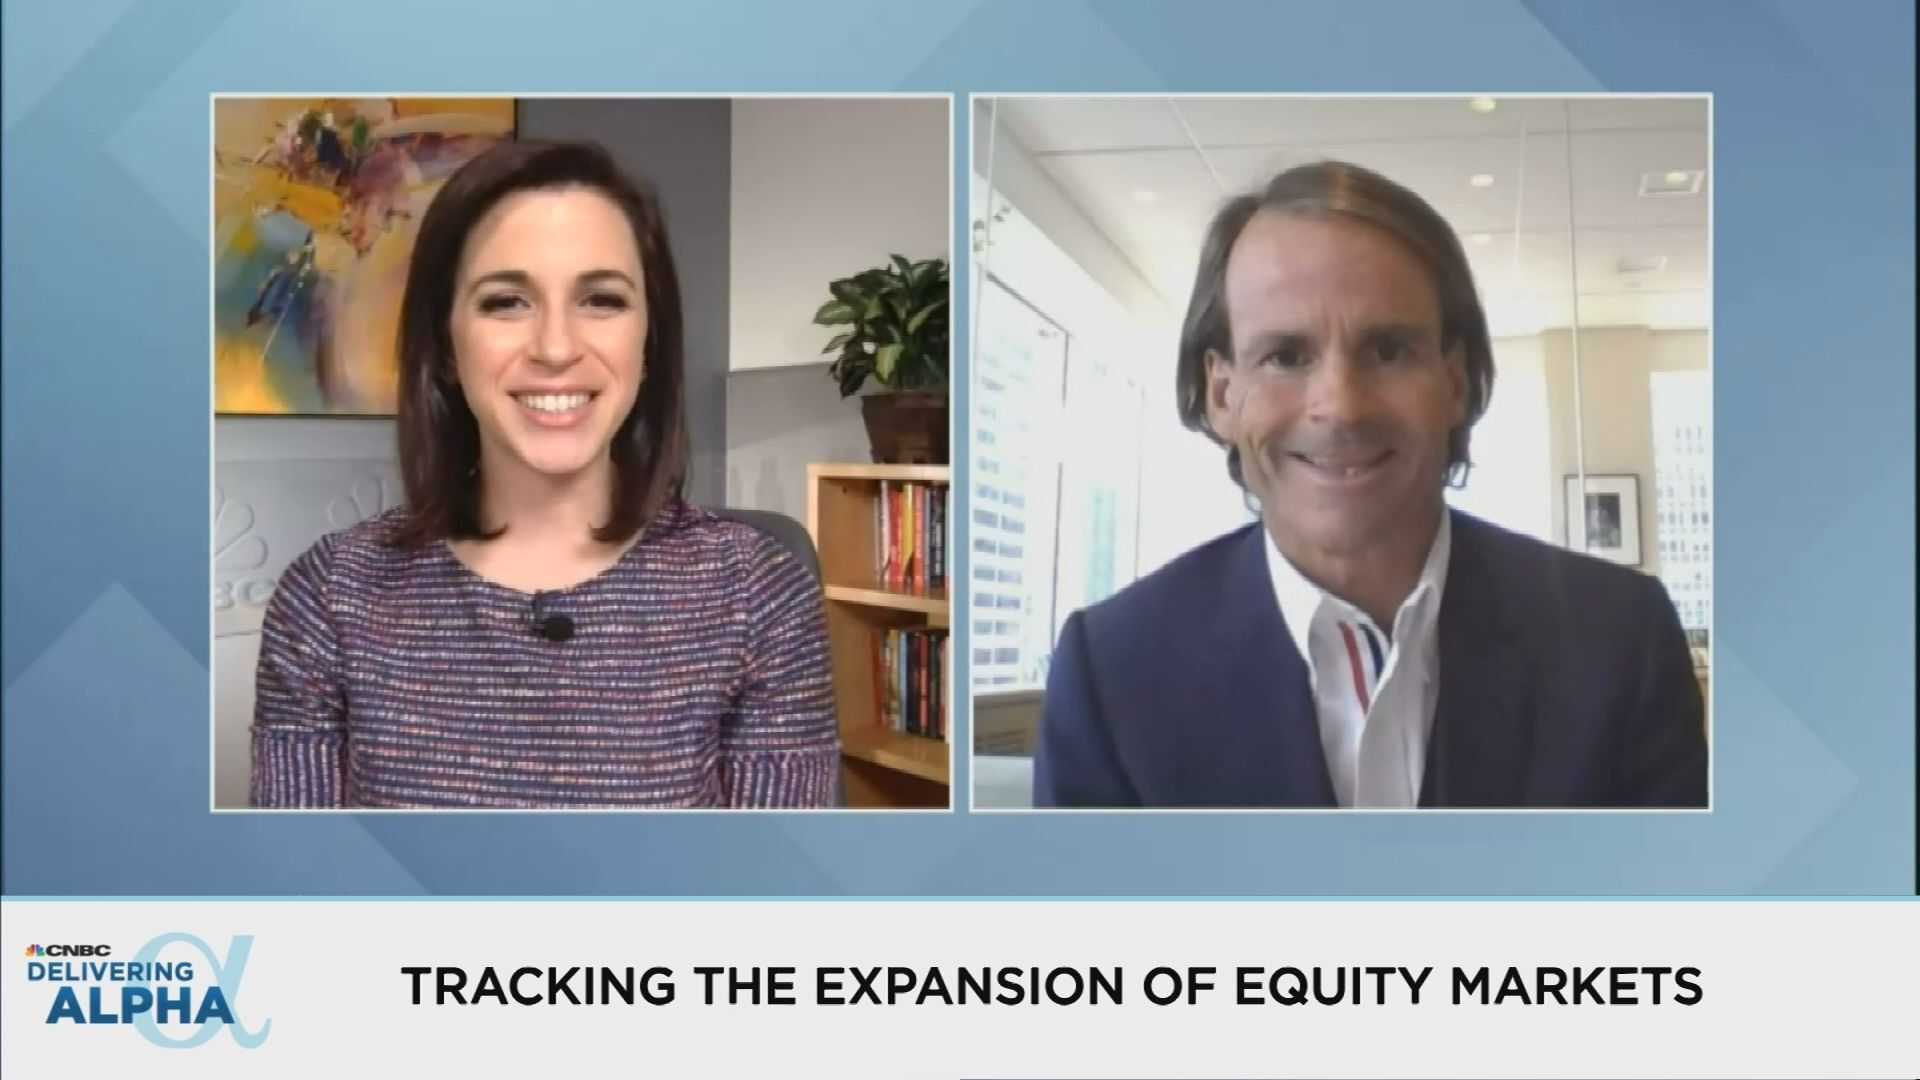 Hellman & Friedman's Patrick Healy on how long this IPO boom can last